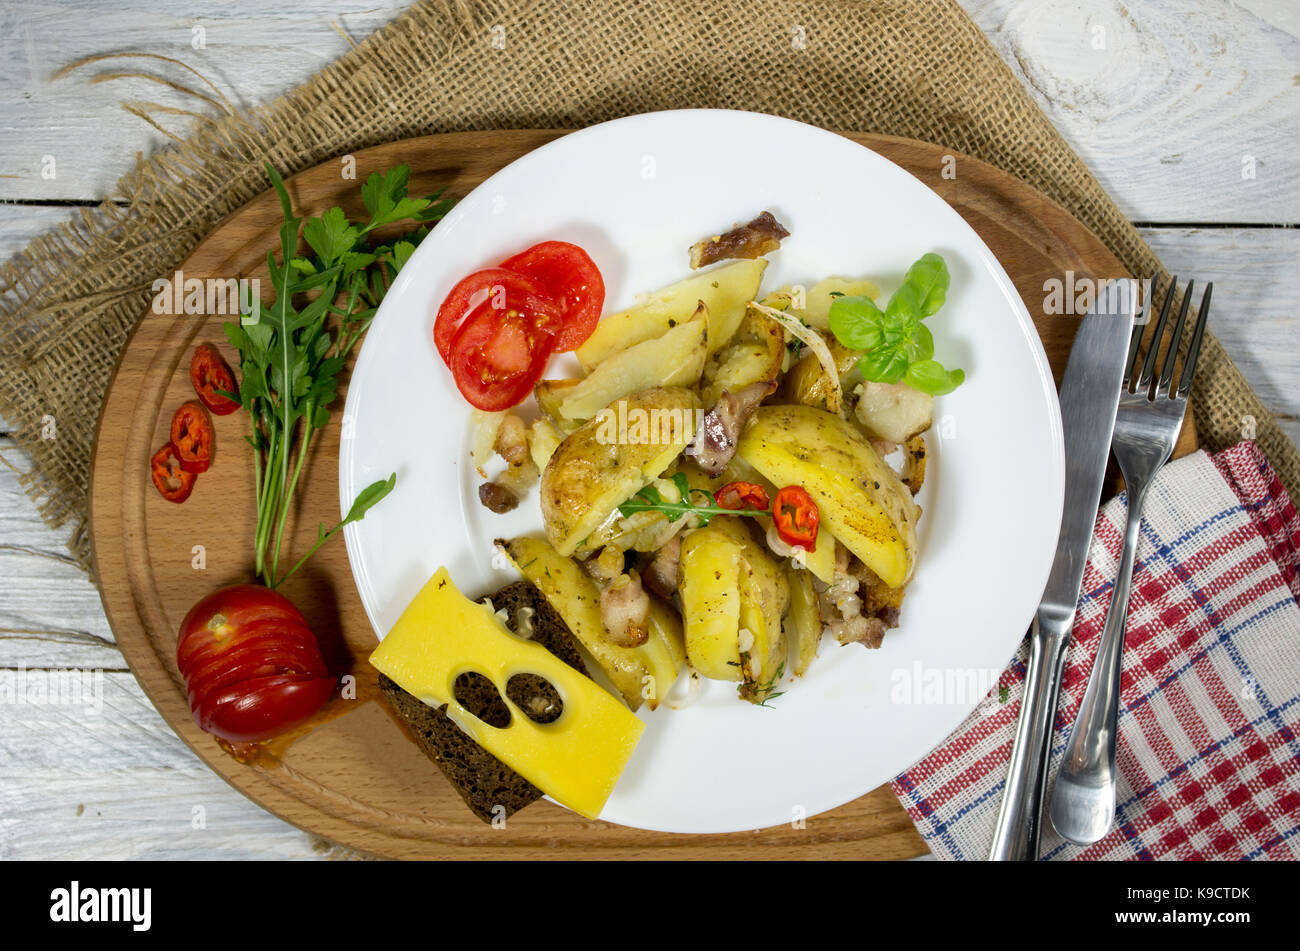 Baked potatoes at home. Potatoes on a white plate. Background burlap. - Stock Image